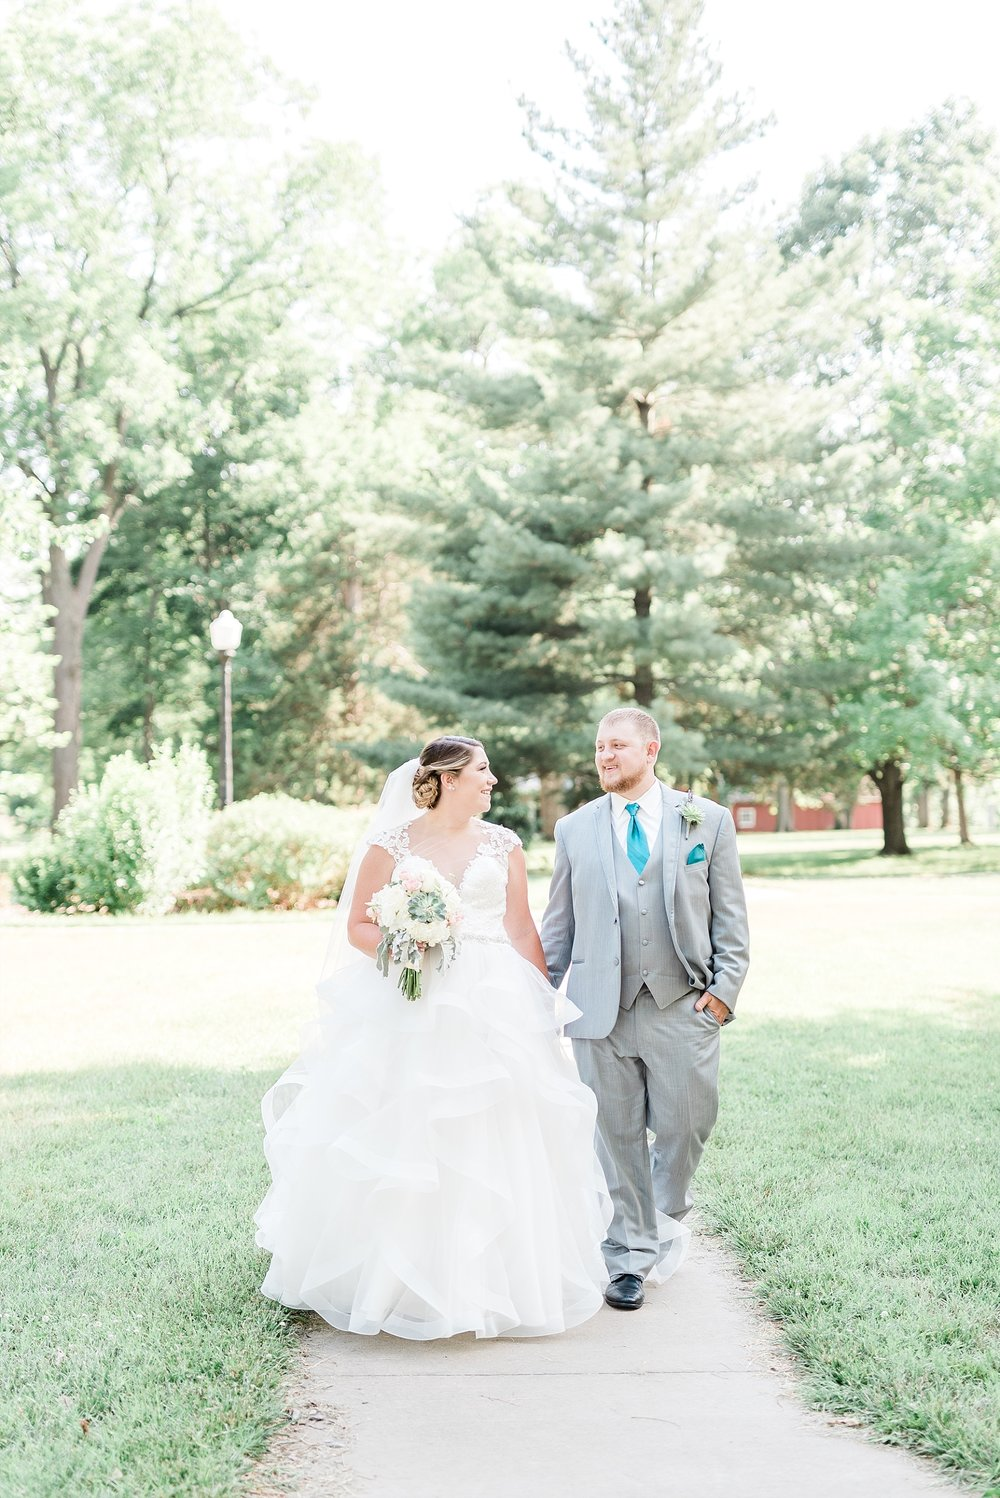 Baurichter Wedding at Stoney Creek Inn Columbia Missouri by Kelsi Kliethermes Photography_0019.jpg